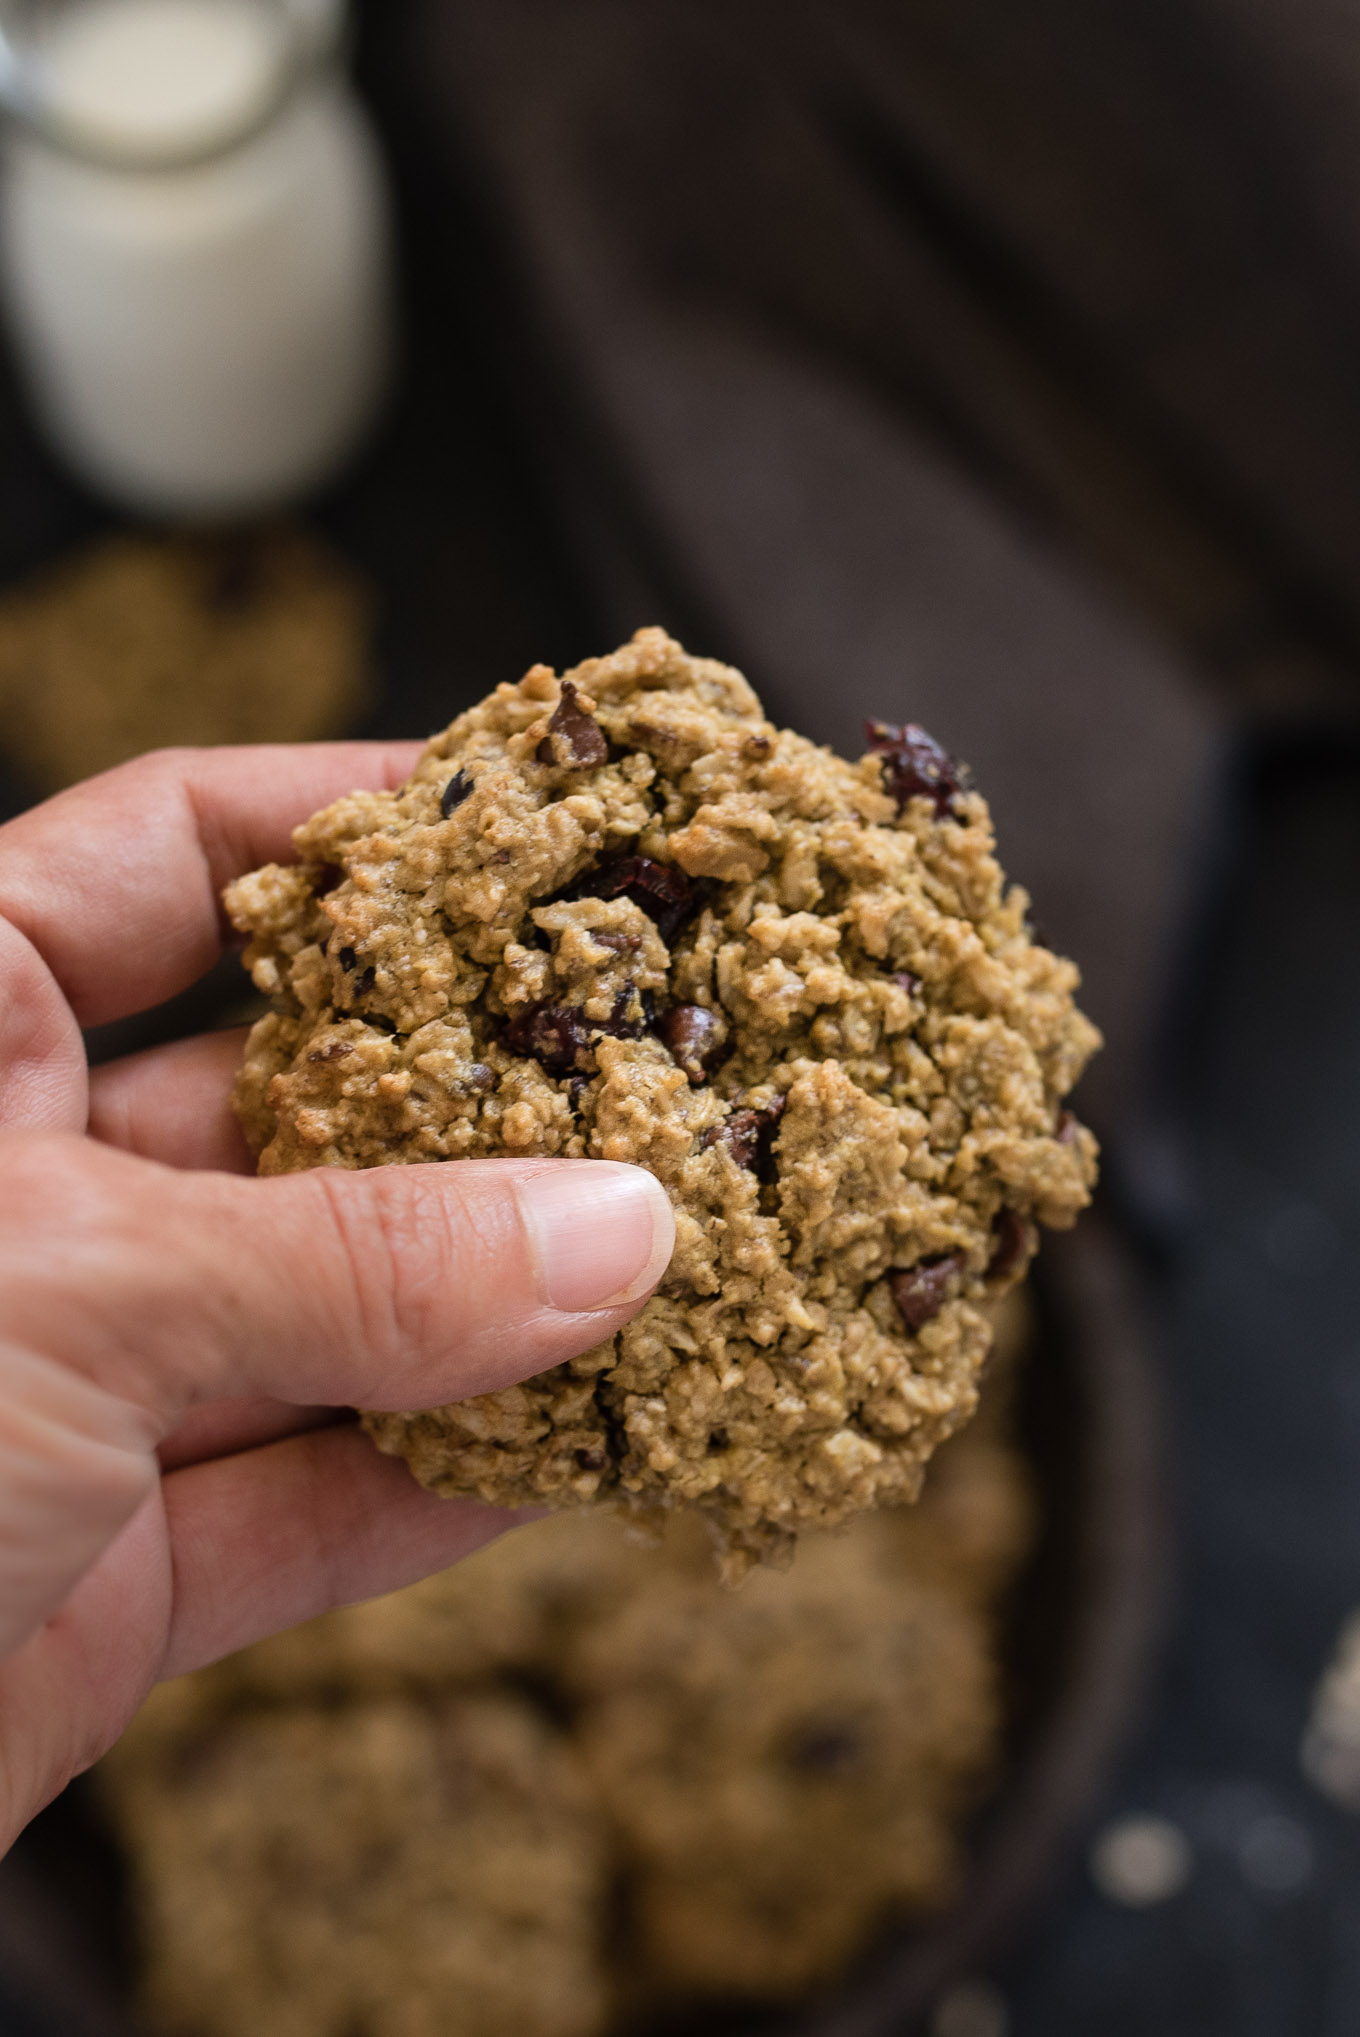 Lunch Box Cookies are both nutritious and delicious- a hearty soft cookie packed with oats, chocolate chips, cranberries, cocoa nibs and reduced amounts of sugar and oil.